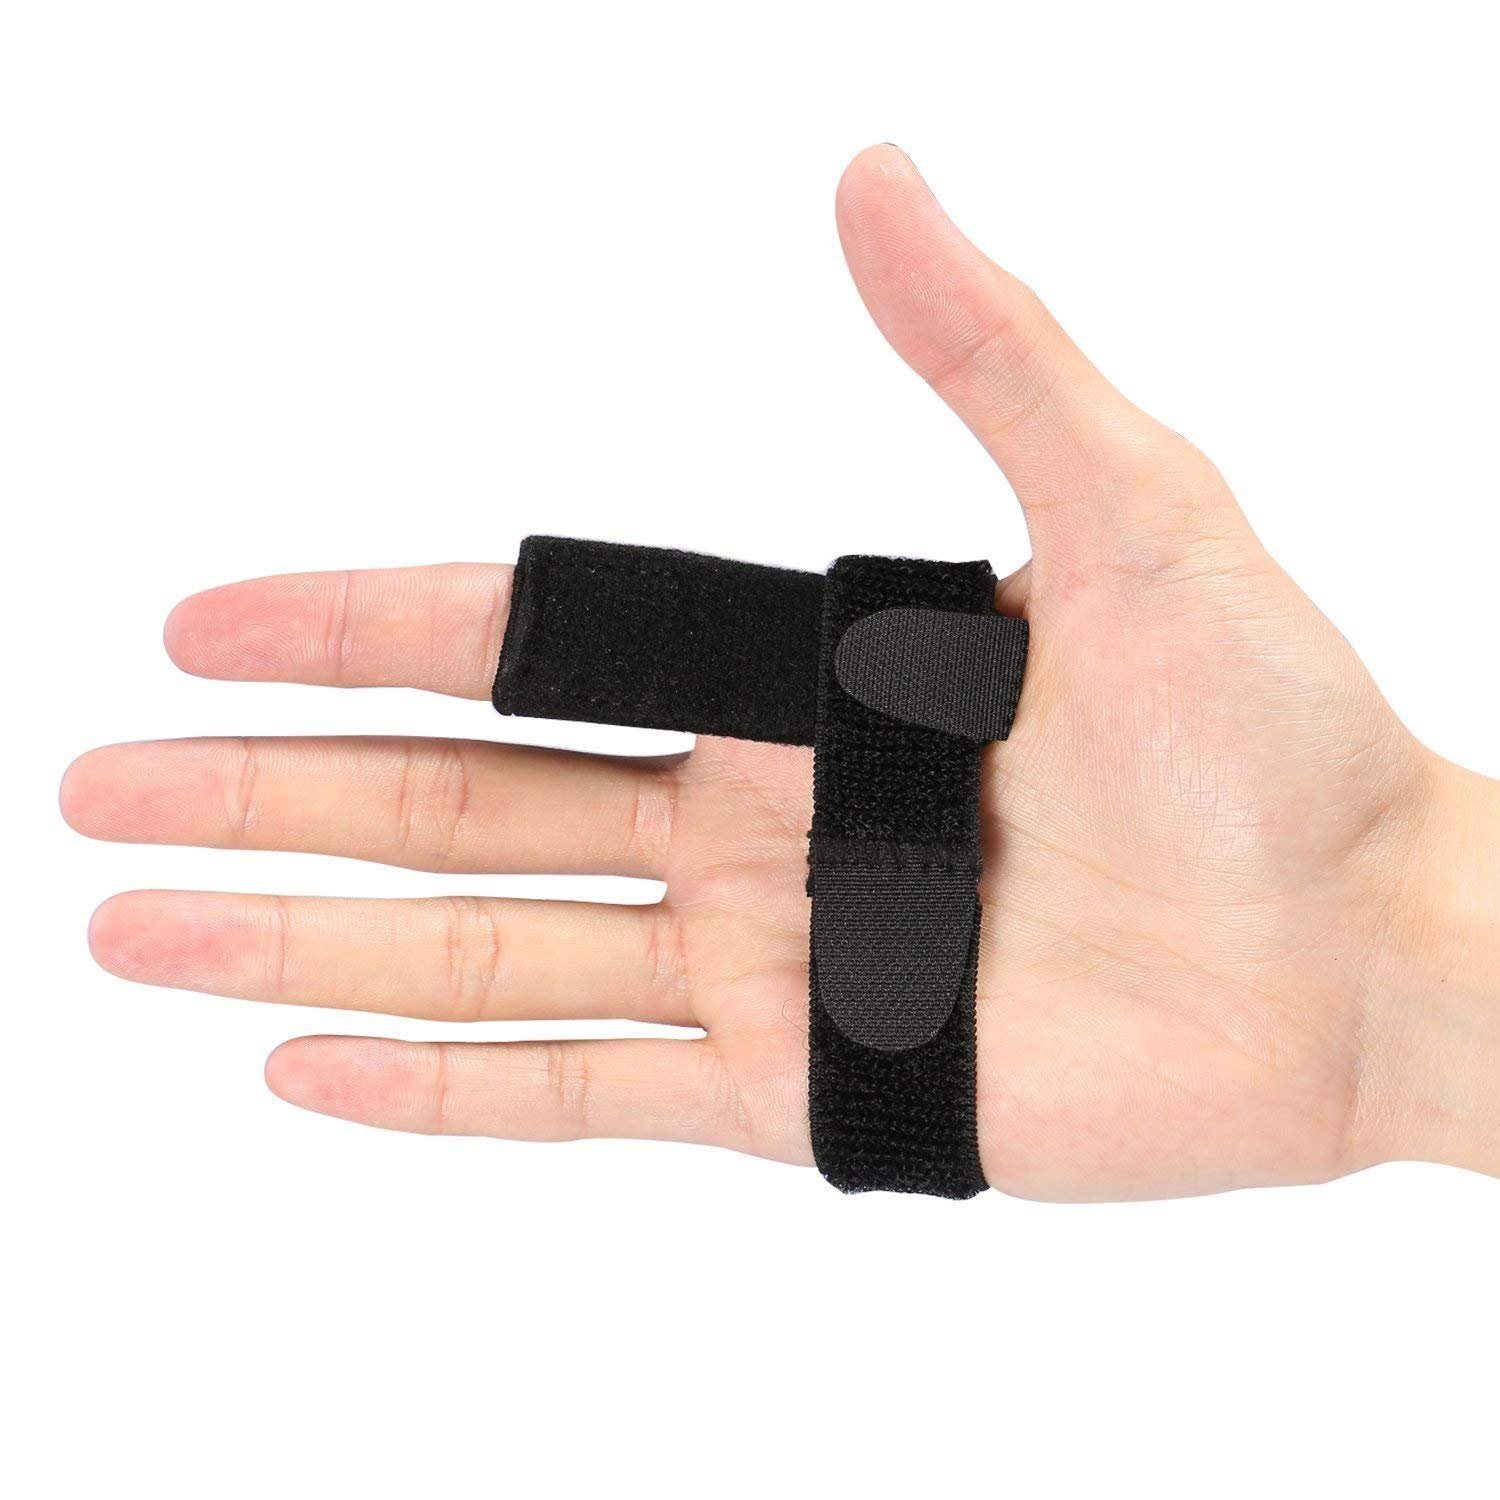 Trigger Finger Splint with Aluminium Bar, Finger Support Brace with Extra Hook & Loop Straps Fits All Fingers for Straightening Curved, Bent, Locked & Stenosing Tenosynovitis, Unisex